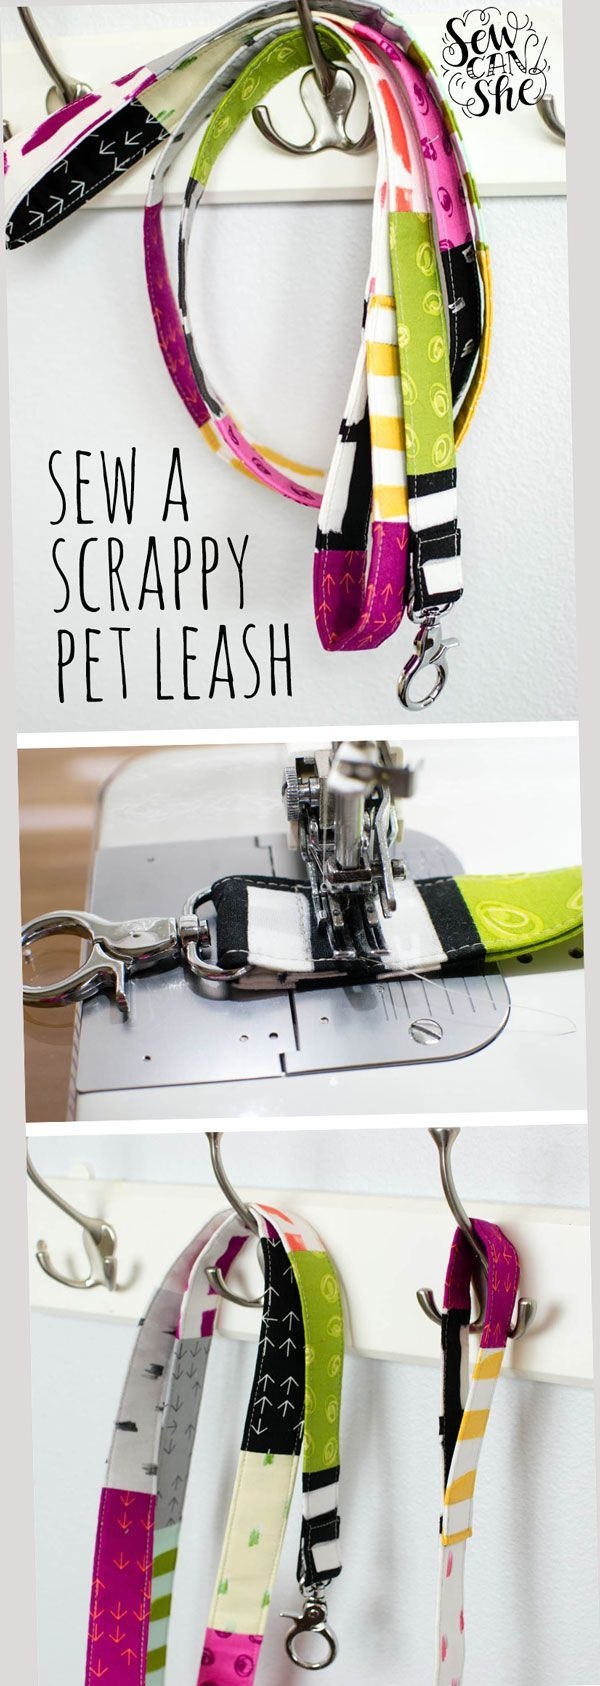 DIY Scrappy Pet Leash - how to sew a dog leash